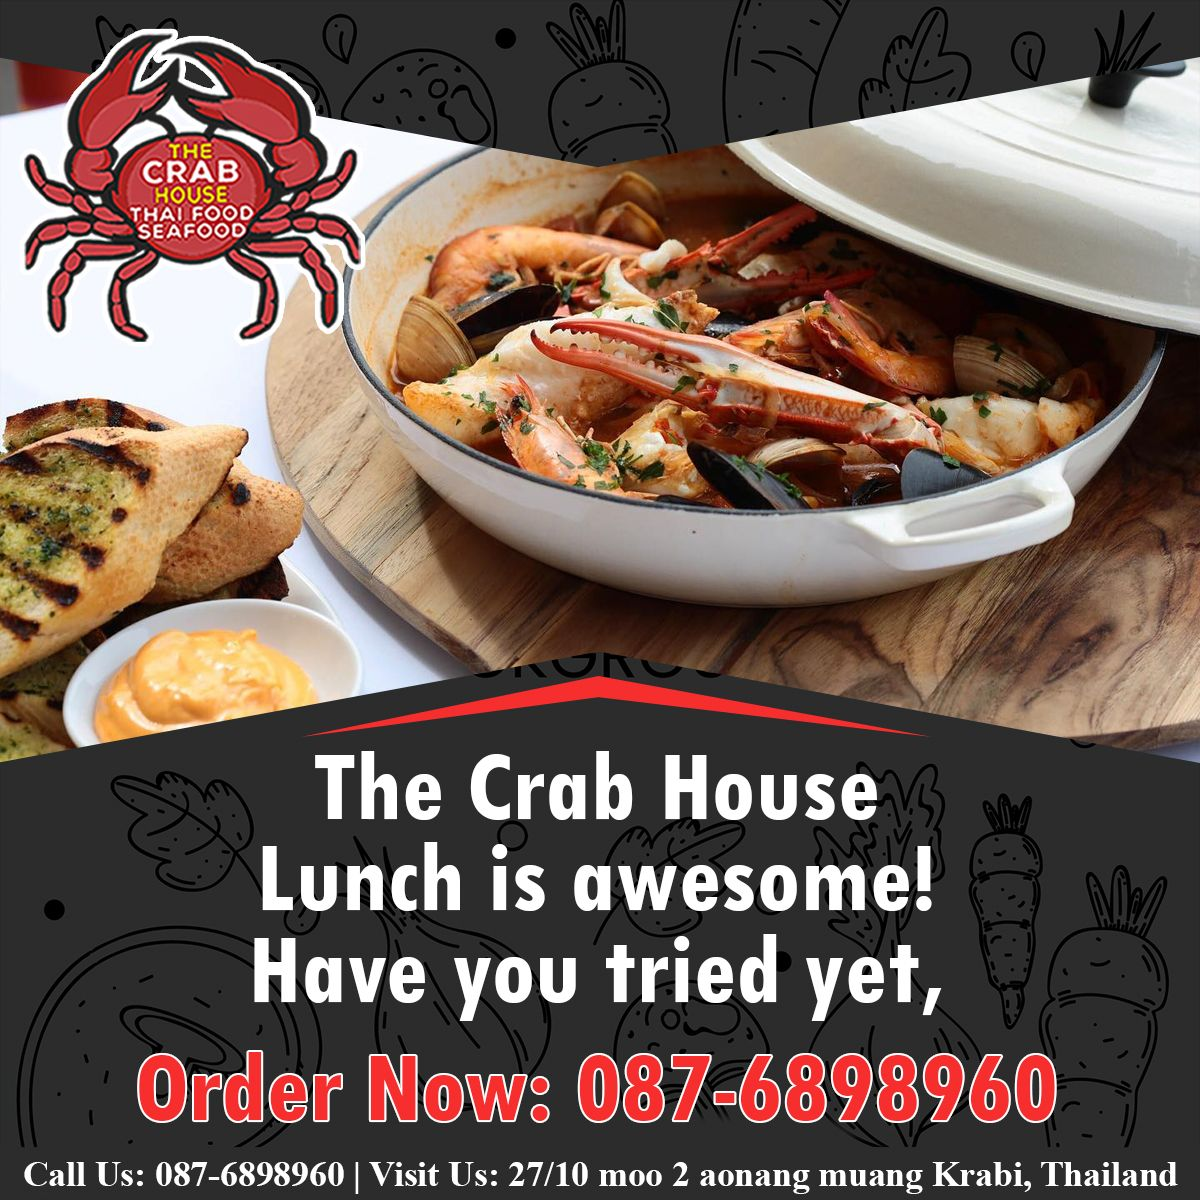 The Crab House Lunch 😋